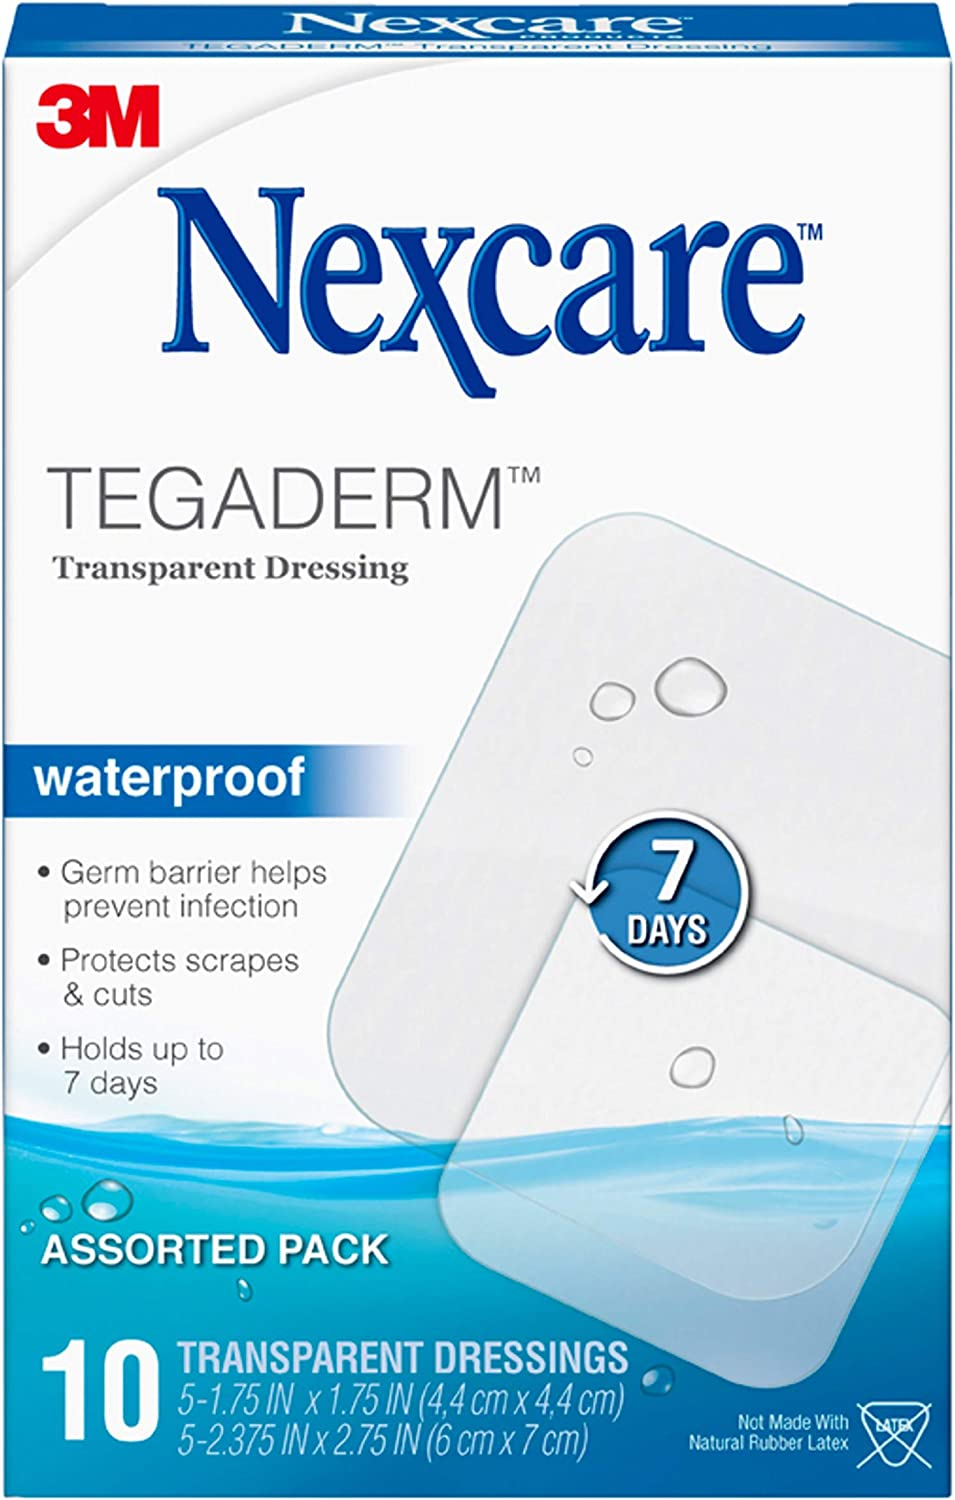 Nexcare Tegaderm Waterproof Transparent Dressing, Dirtproof, Germproof, 2-3/8 Inches X 2-3/4 Inches, 10 Count Packaging may vary.